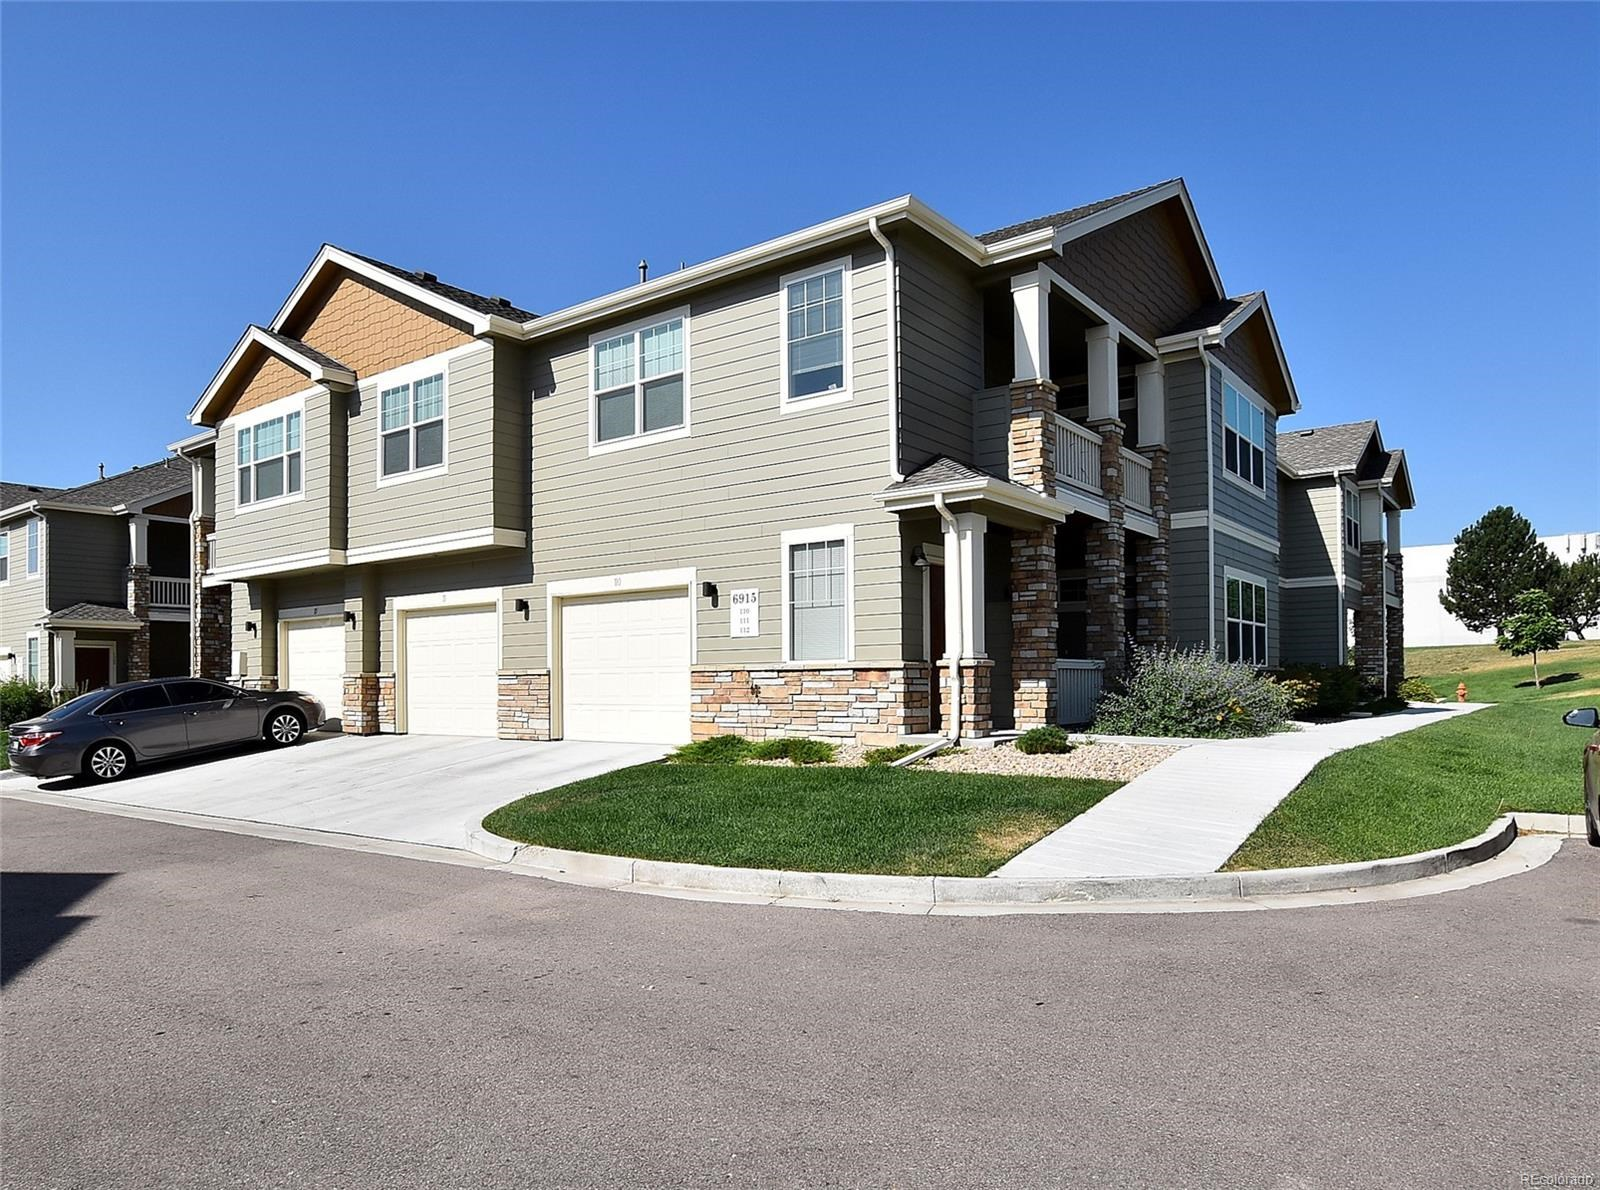 MLS# 5772080 - 2 - 6915 W 3rd Street #111, Greeley, CO 80634